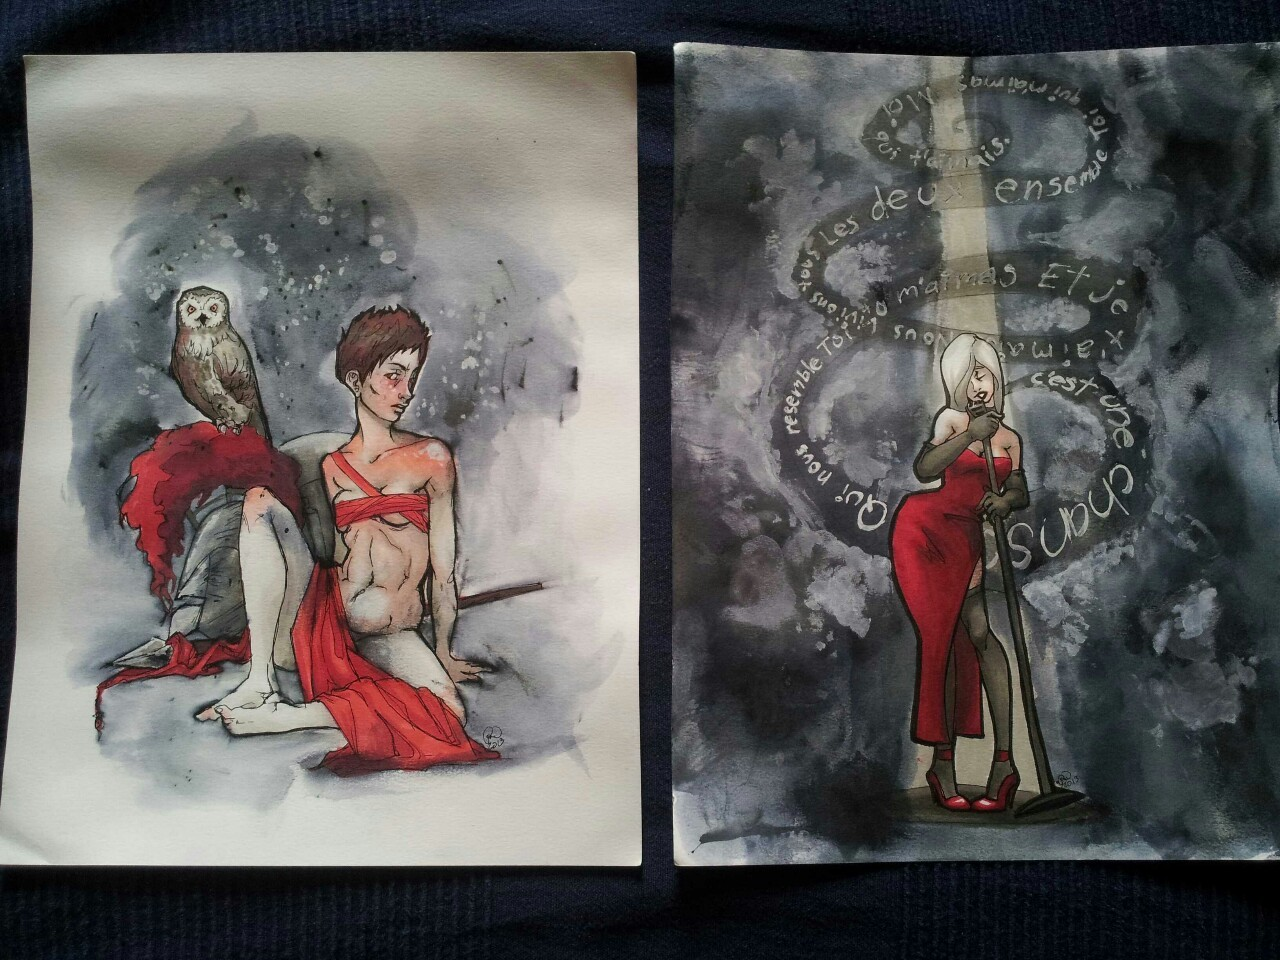 Drawings! Real finished ones with ink and watercolor paper and everything!